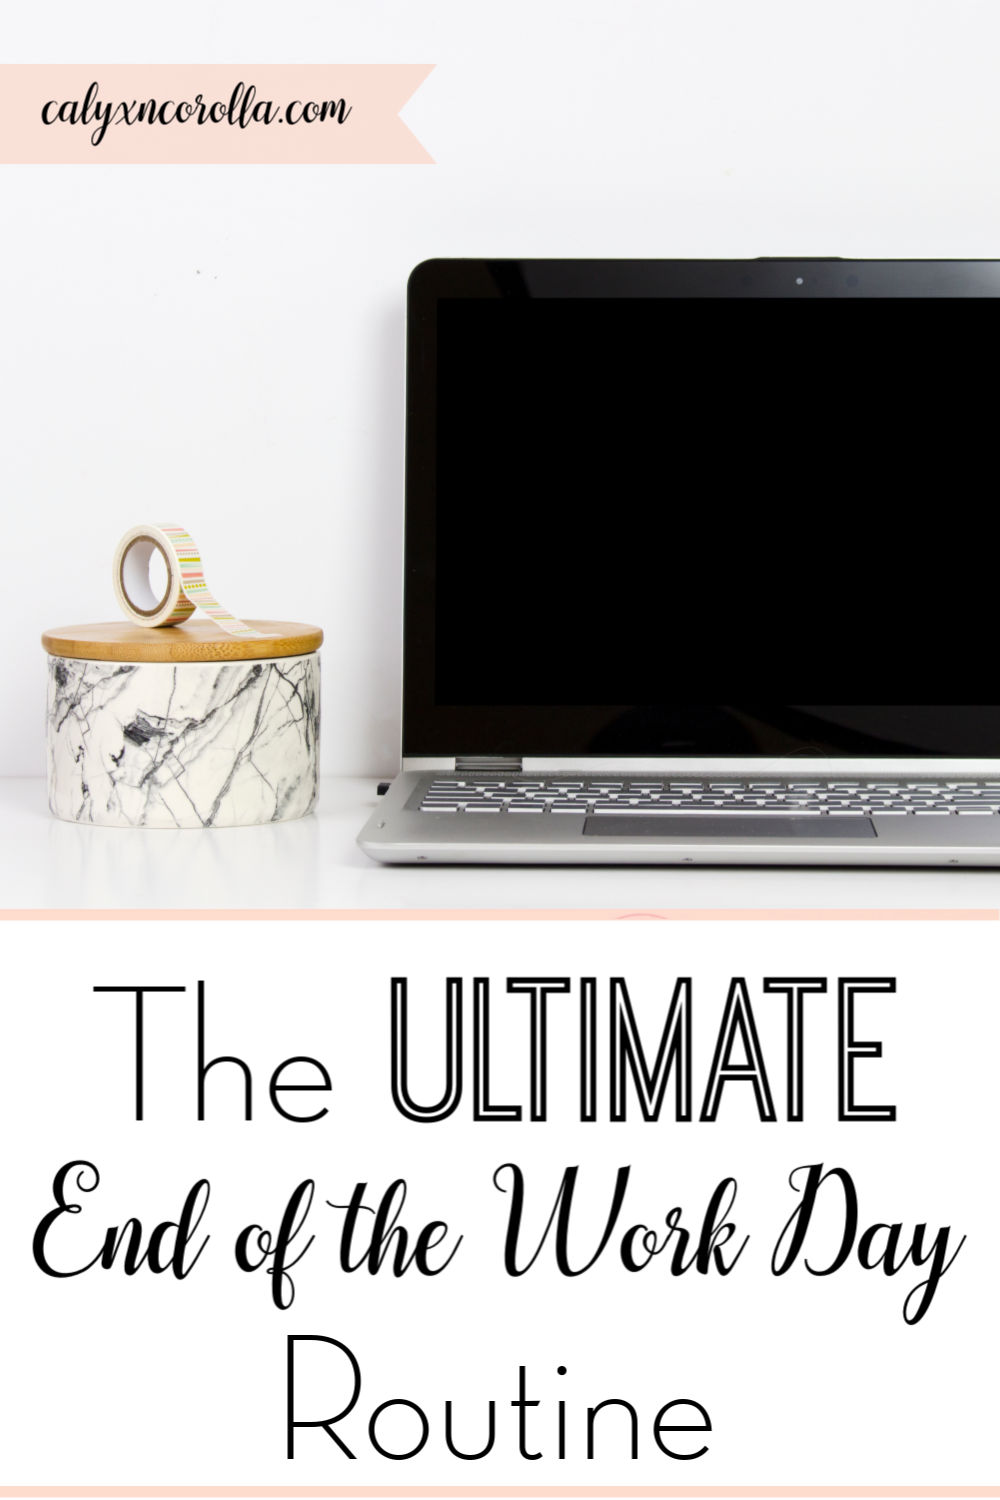 The Ultimate End of the Work Day Routine | Calyx and Corolla